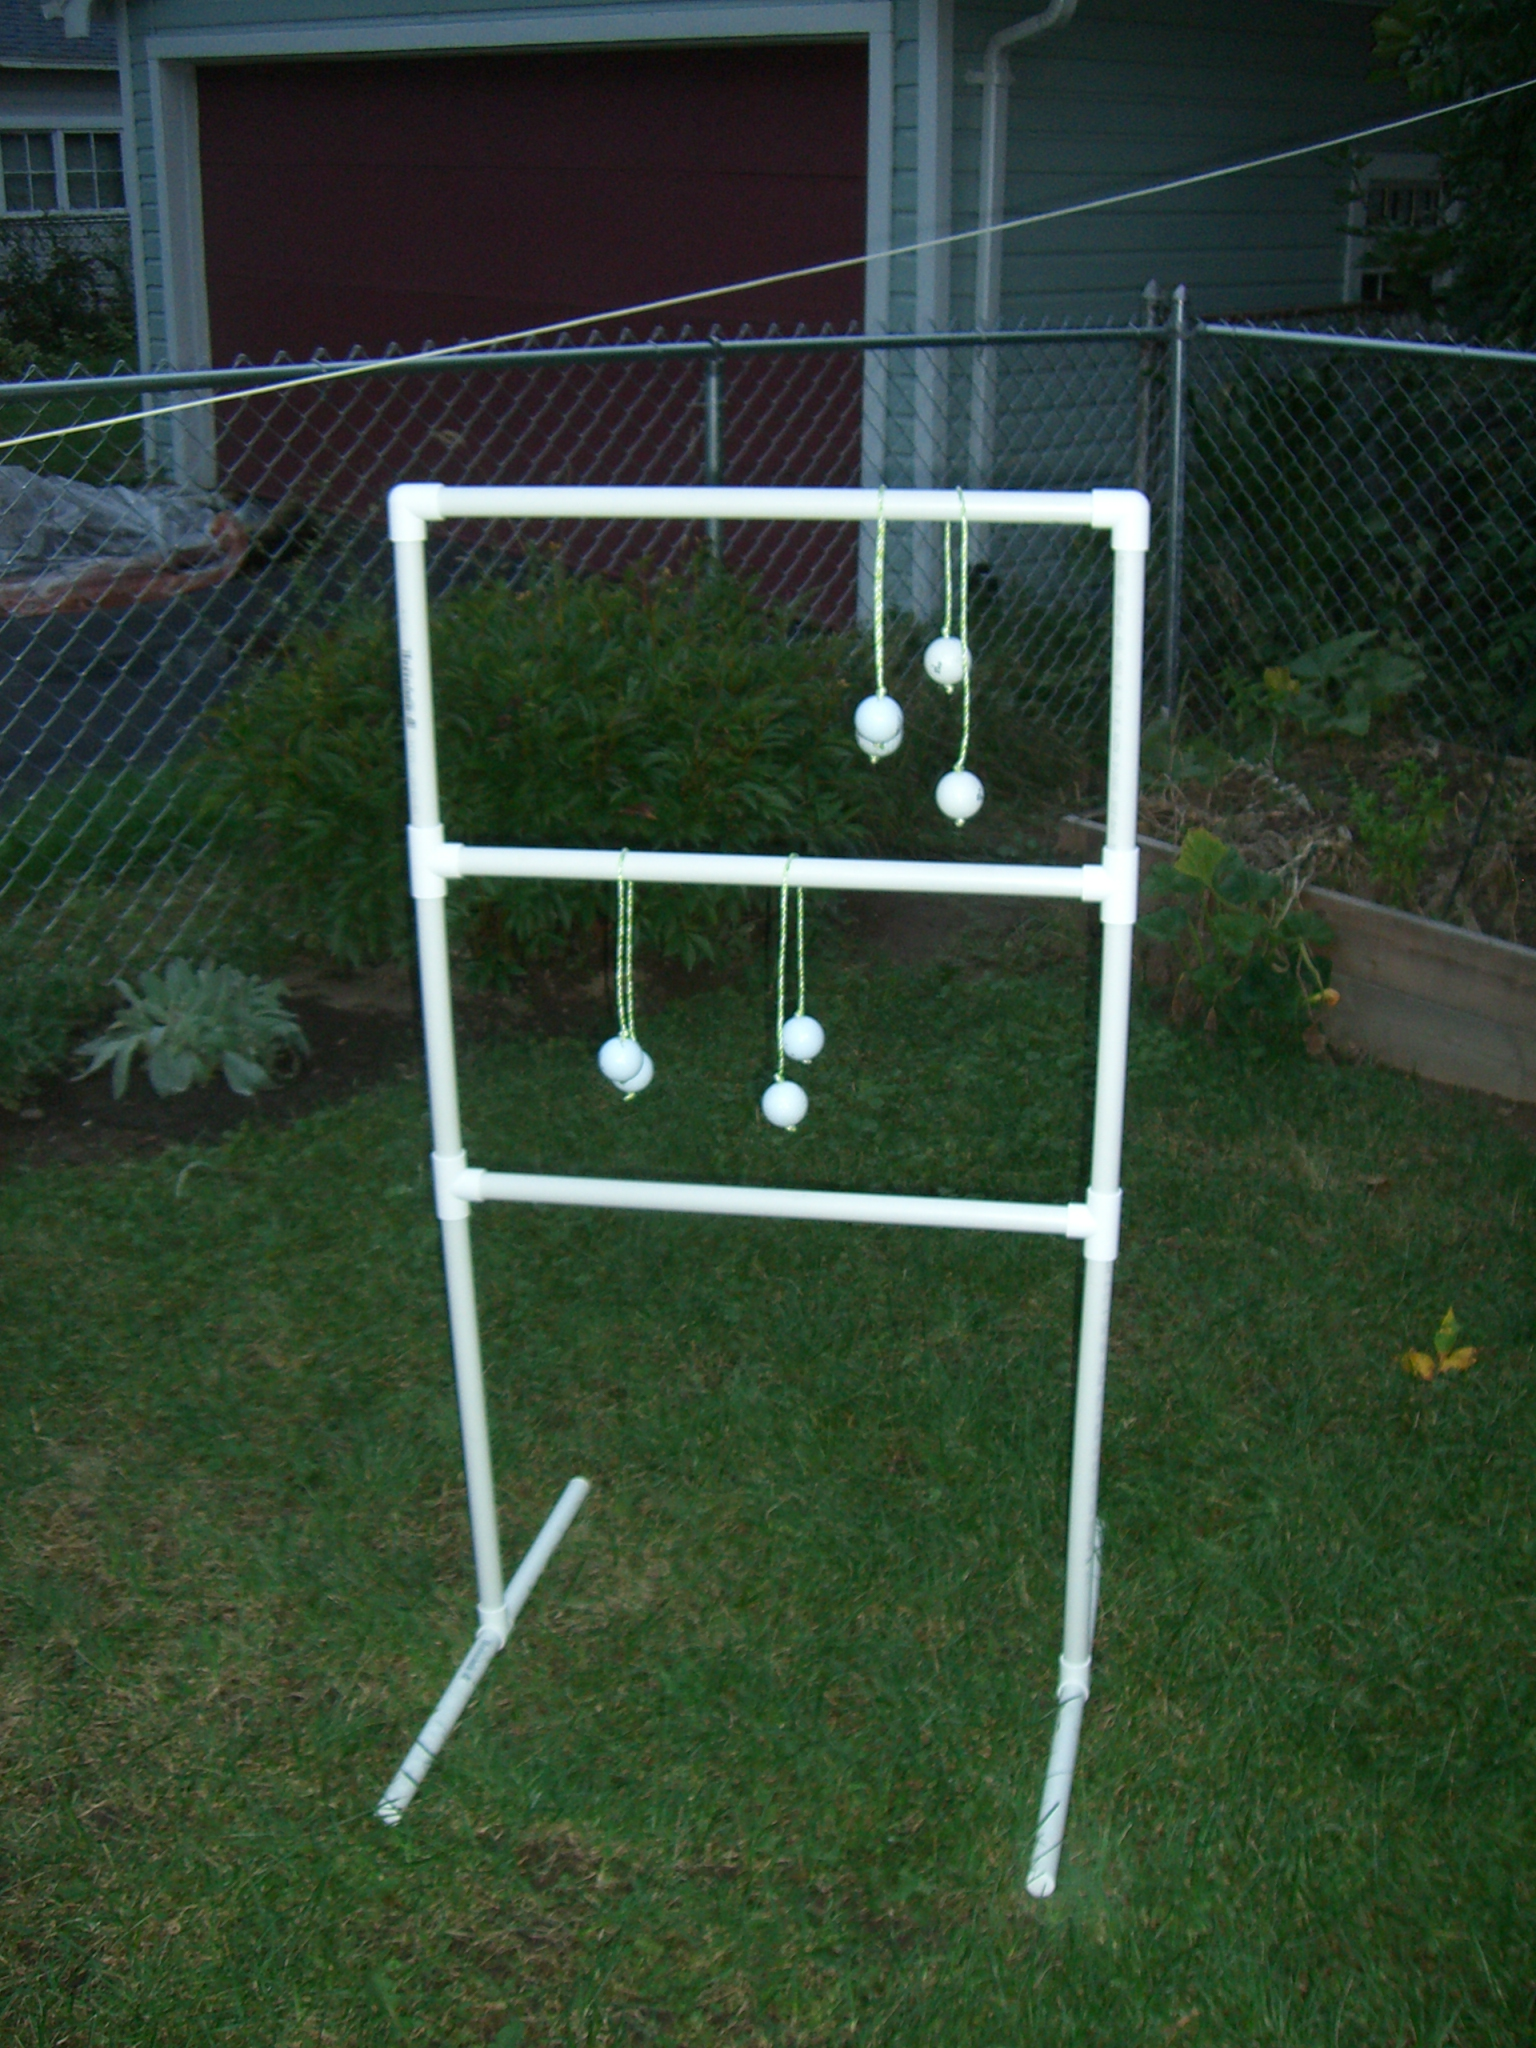 Ladder Golf Pvc Camping Game 4 Steps Instructables